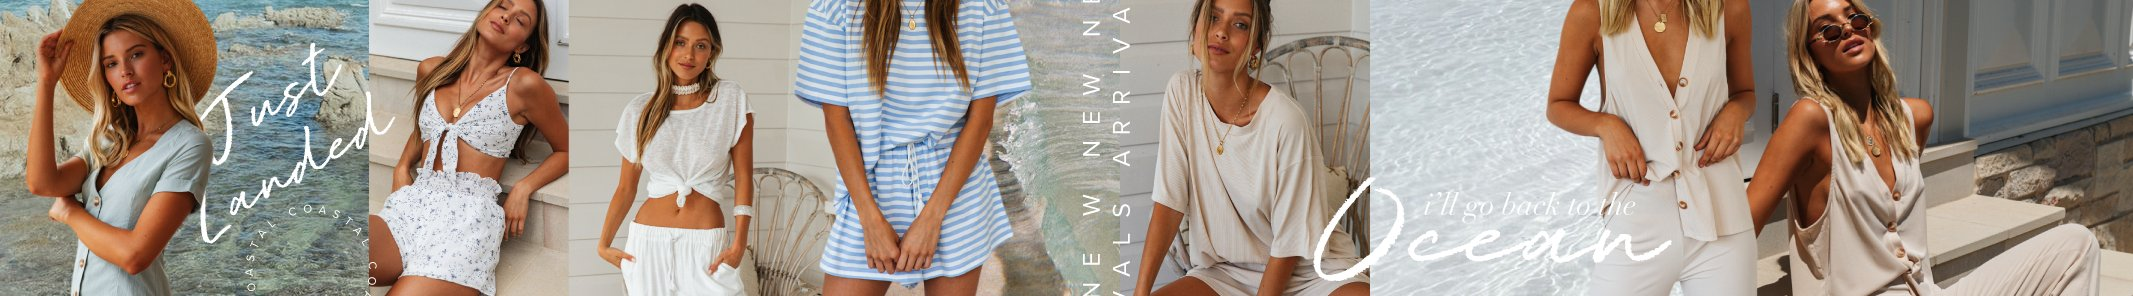 Mura Fashion - 30% OFF 06 October 18